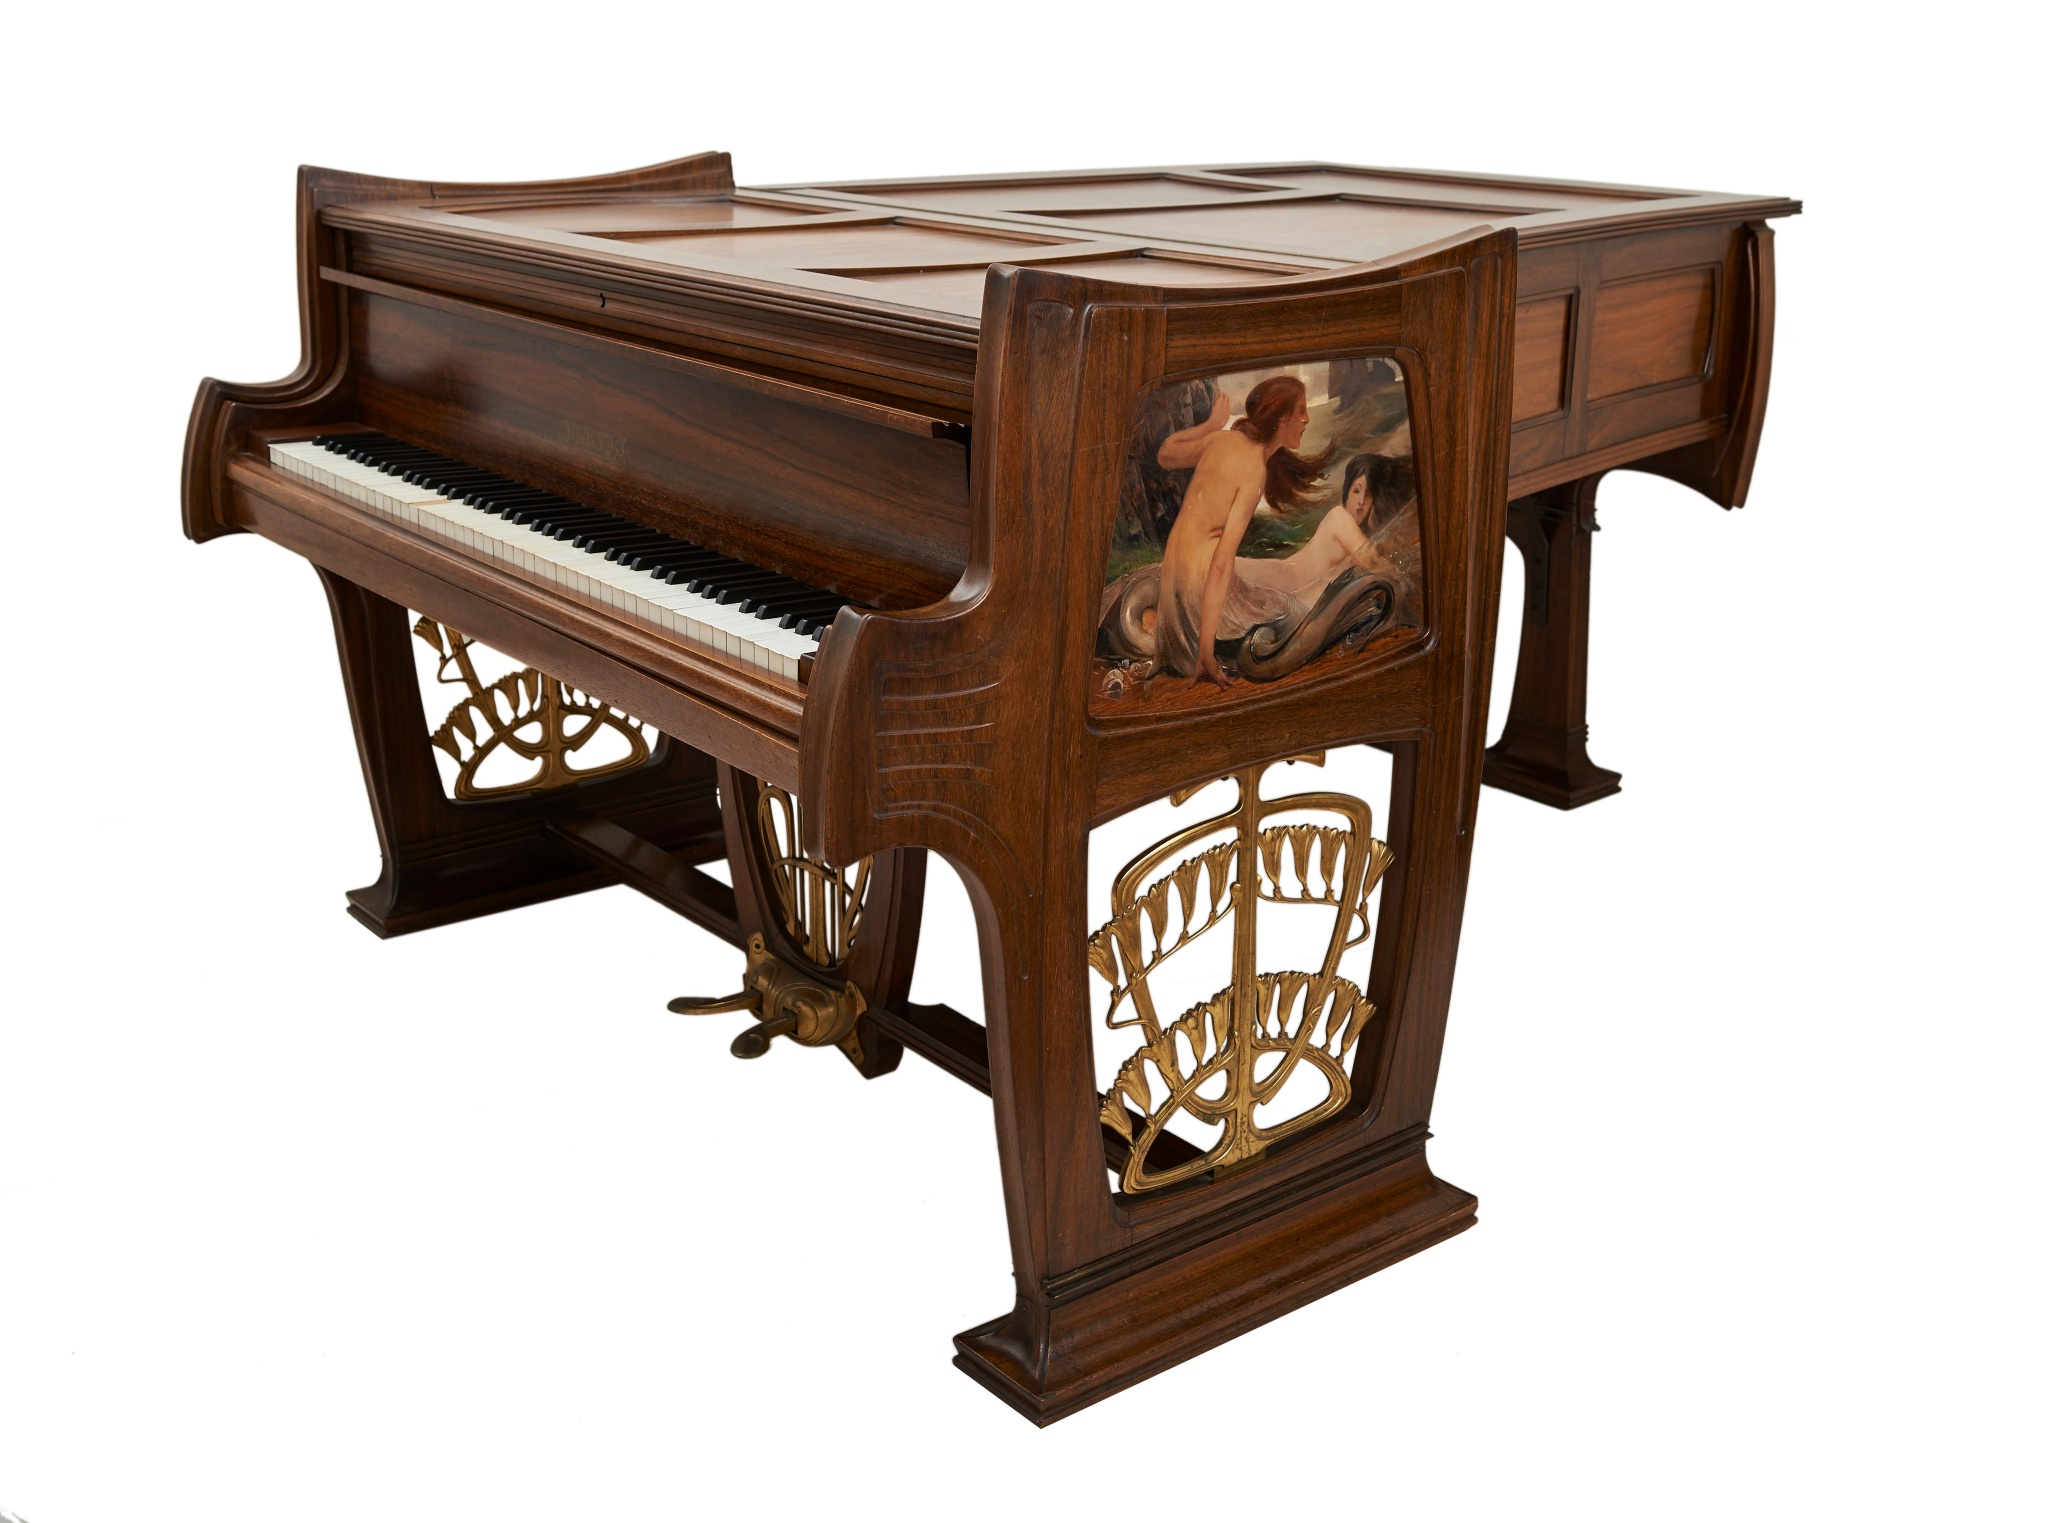 piano demi queue pleyel du salon de musique du. Black Bedroom Furniture Sets. Home Design Ideas